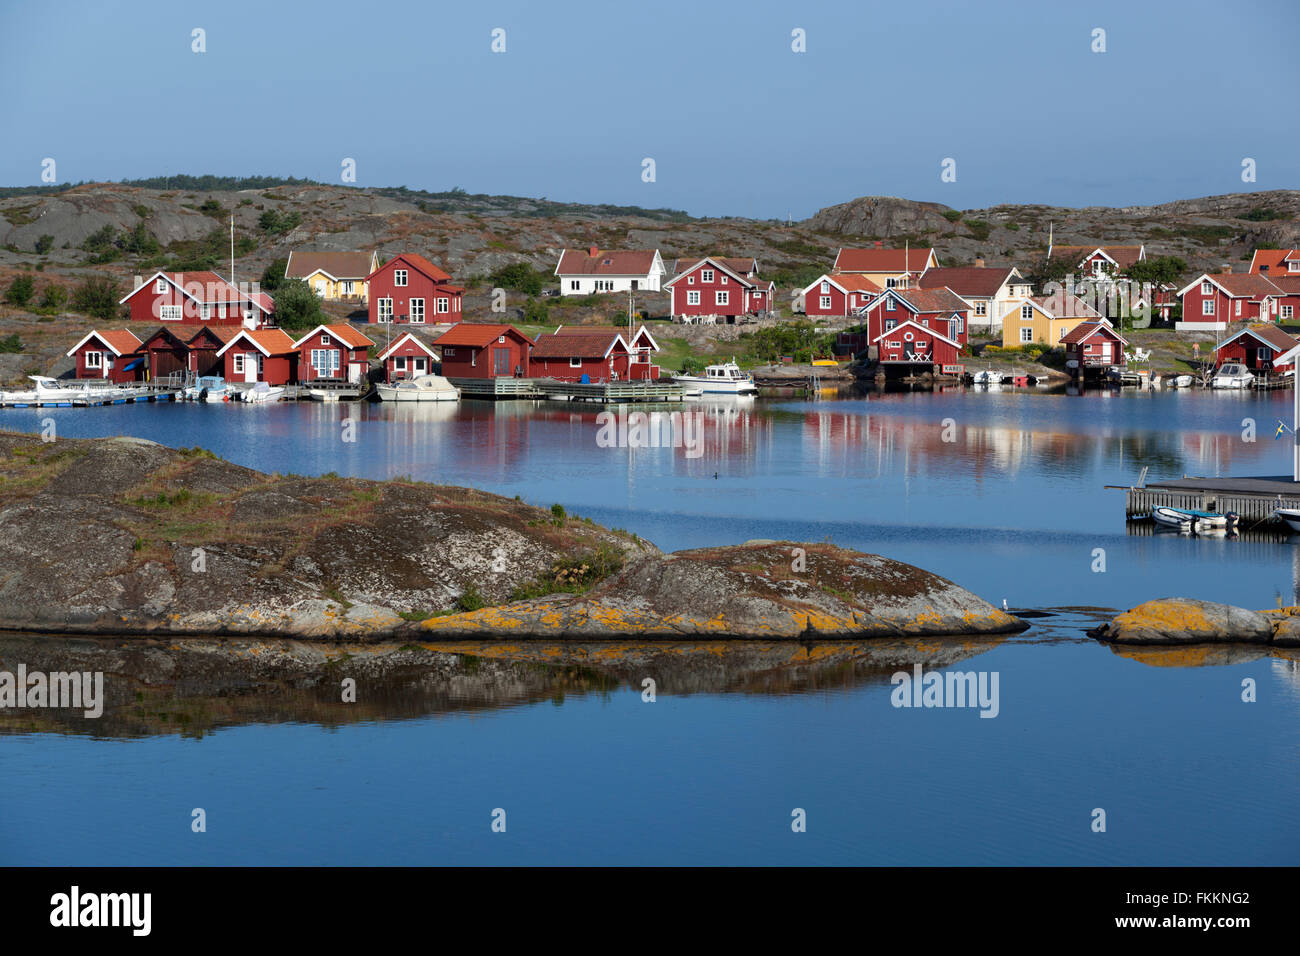 View to falu red fishermen's houses, Stocken, Orust, Bohuslän Coast, Southwest Sweden, Sweden, Scandinavia, Europe Stock Photo